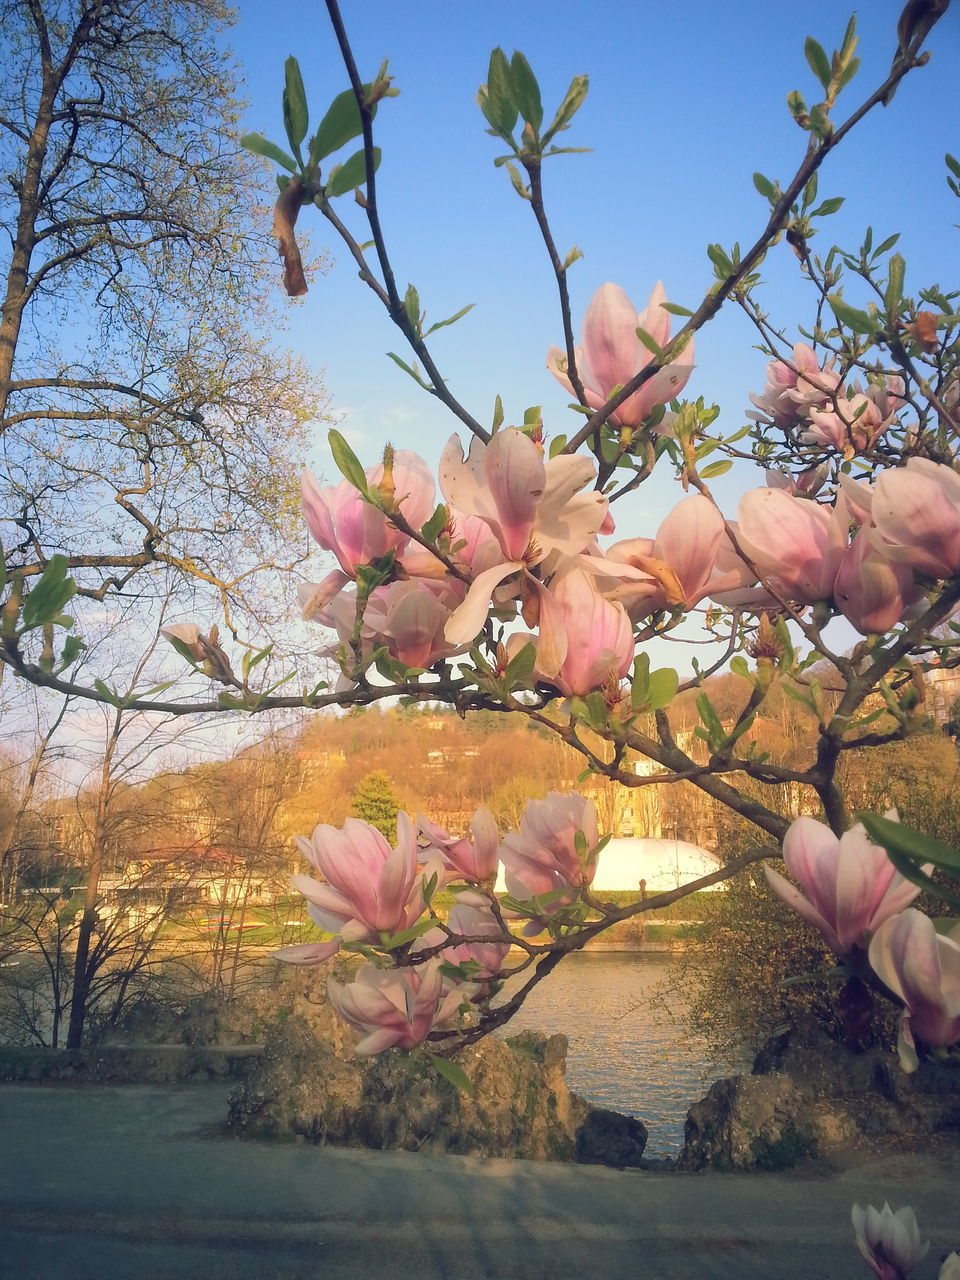 flower, tree, beauty in nature, branch, nature, fragility, pink color, growth, blossom, petal, magnolia, no people, freshness, springtime, botany, sky, day, outdoors, low angle view, flower head, plant, close-up, blooming, clear sky